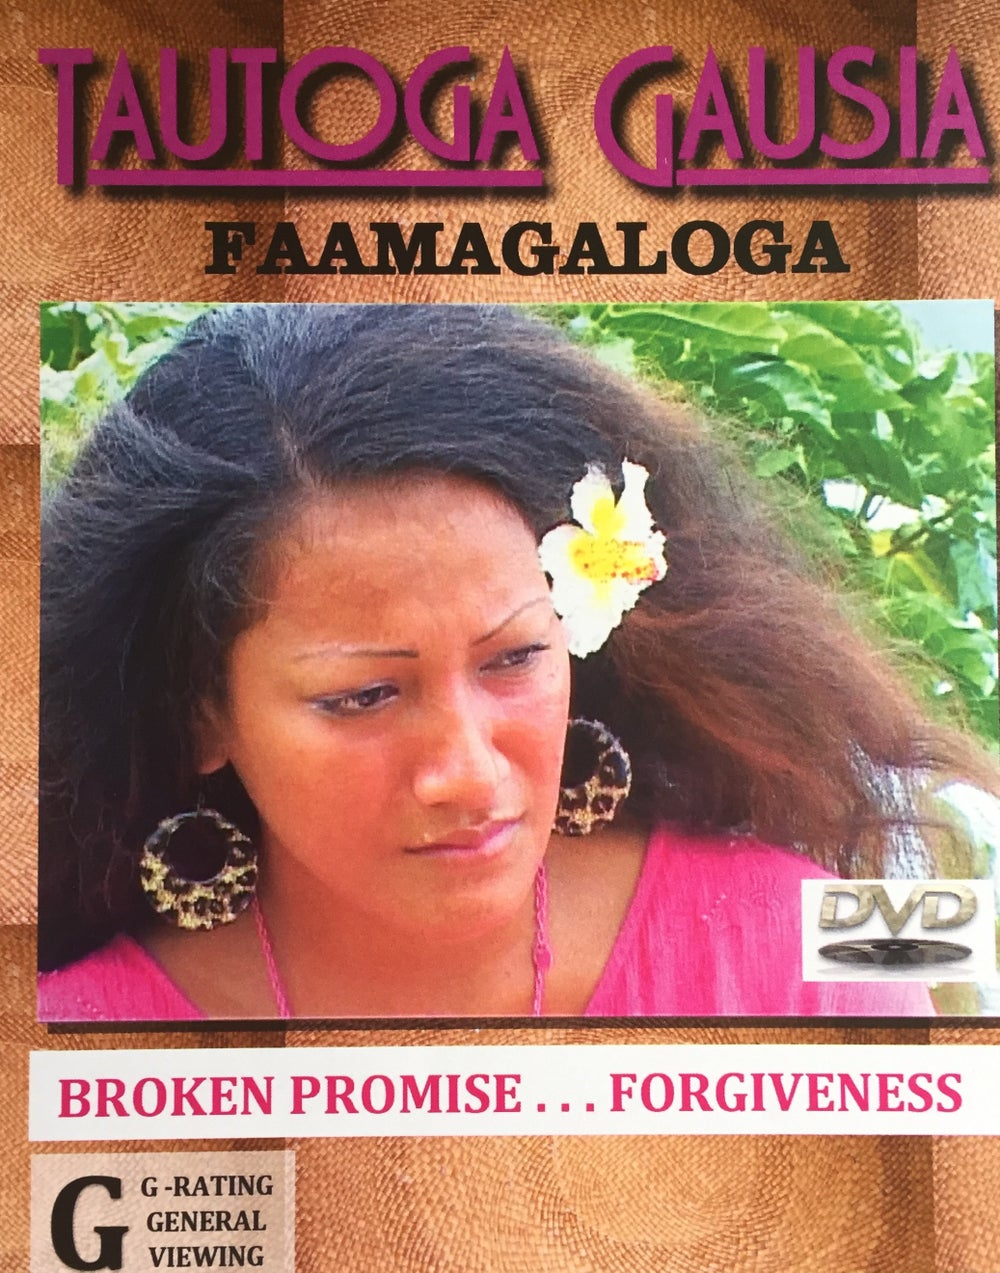 Image of BROKEN PROMISE 2 - TAUTOGA GAUSIA